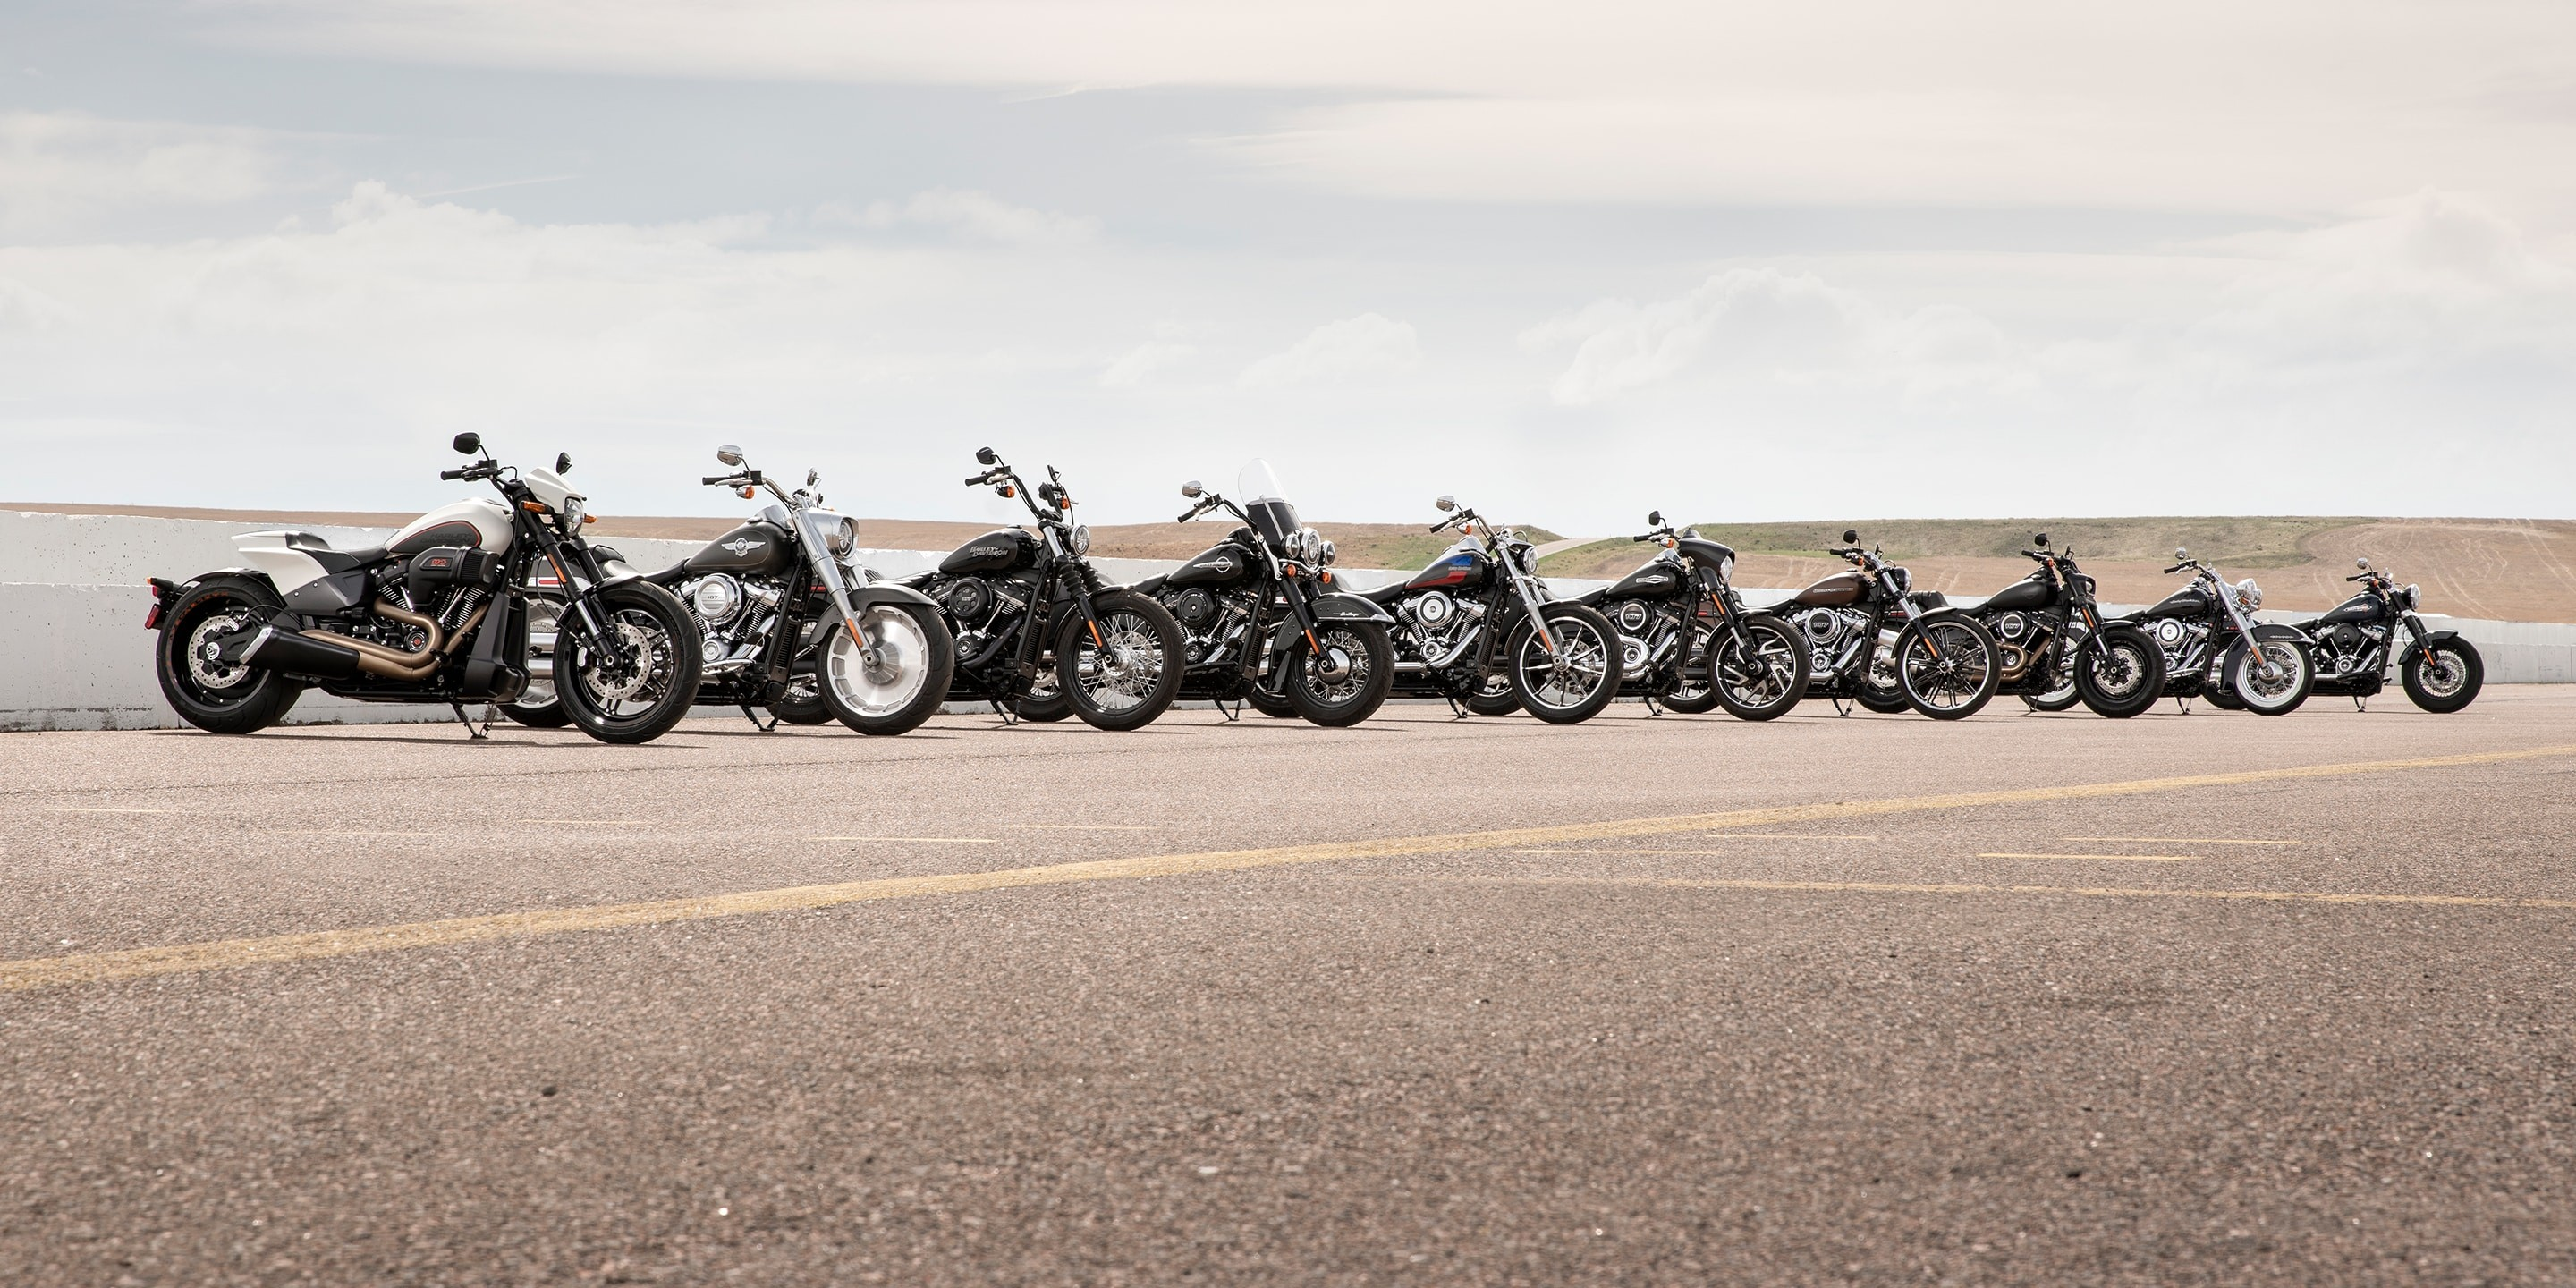 2019 Softail Motorcycles